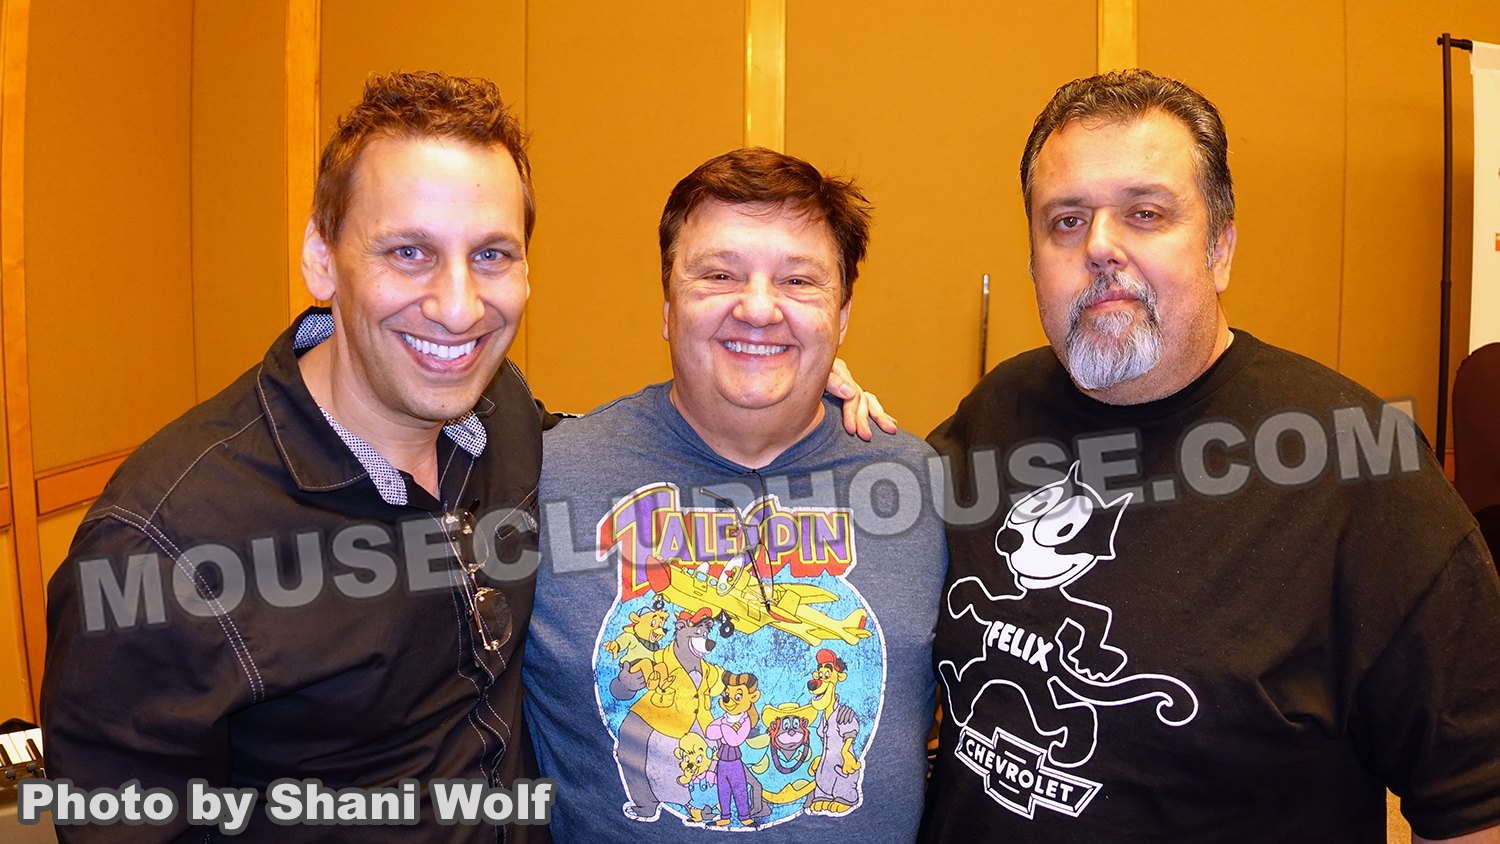 Here I am with Jymn Magon, the creator of TaleSpin and Len Smith, TaleSpin character designer